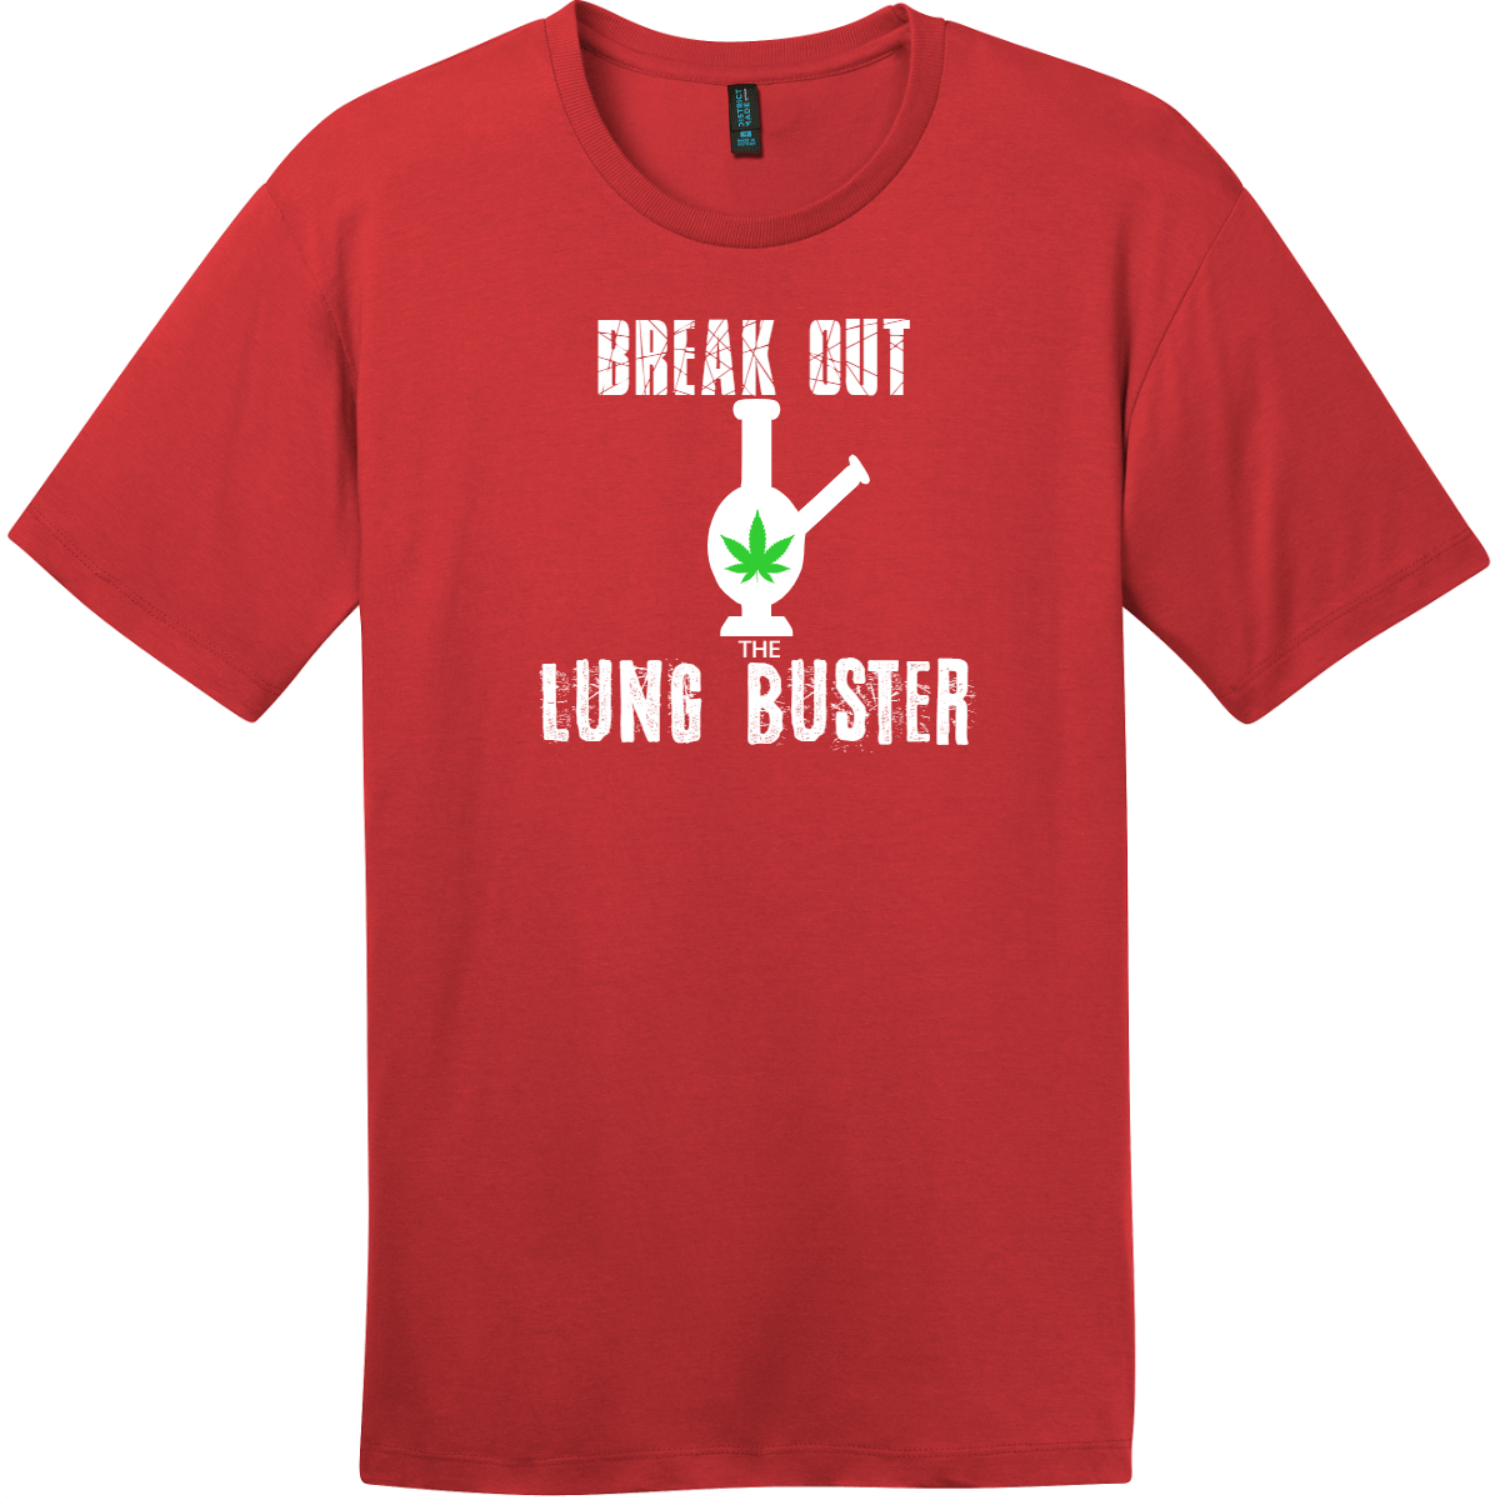 Break Out The Lung Buster Bong T-Shirt Classic Red District Perfect Weight Tee DT104